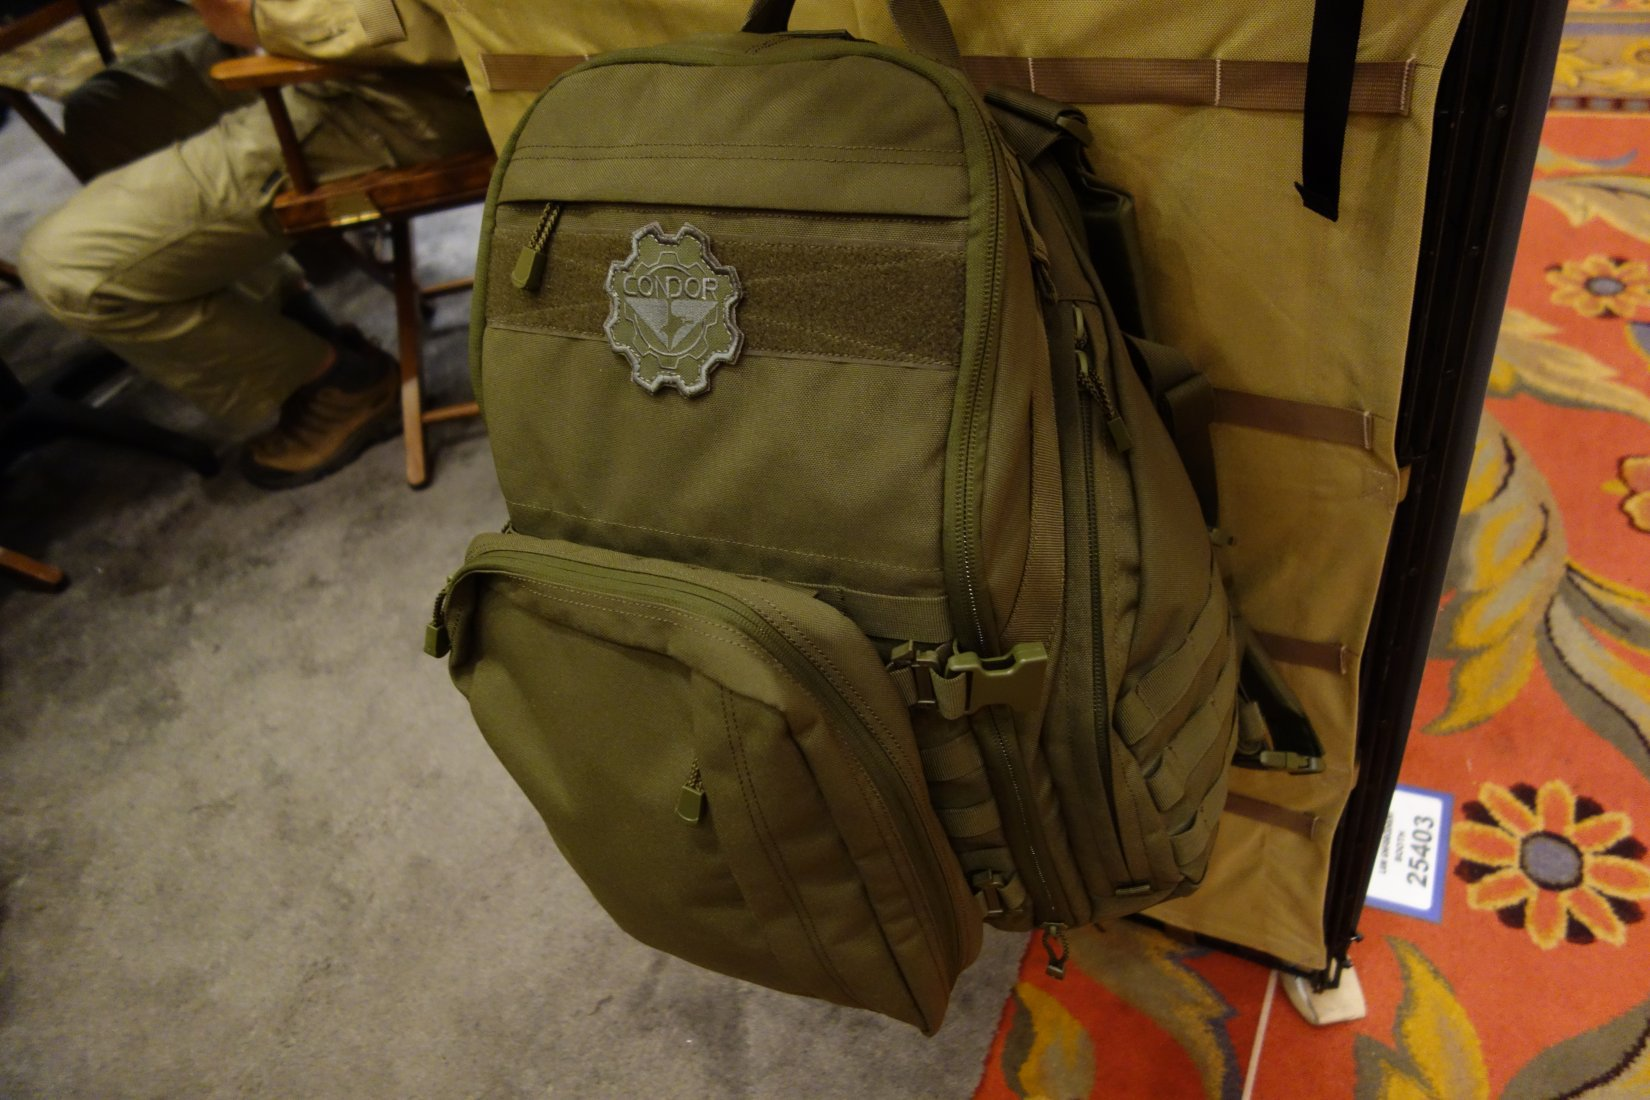 Condor Outdoor Bison Backpack Combat Tactical Pack with Tactical Hydration Capability Andy Chen SHOT Show 2013 David Crane DefenseReview.com DR 1 Condor Bison Backpack: Combat/Tactical Pack with Tactical Hydration Capability  and it can Carry Your Laptop! (Video!)